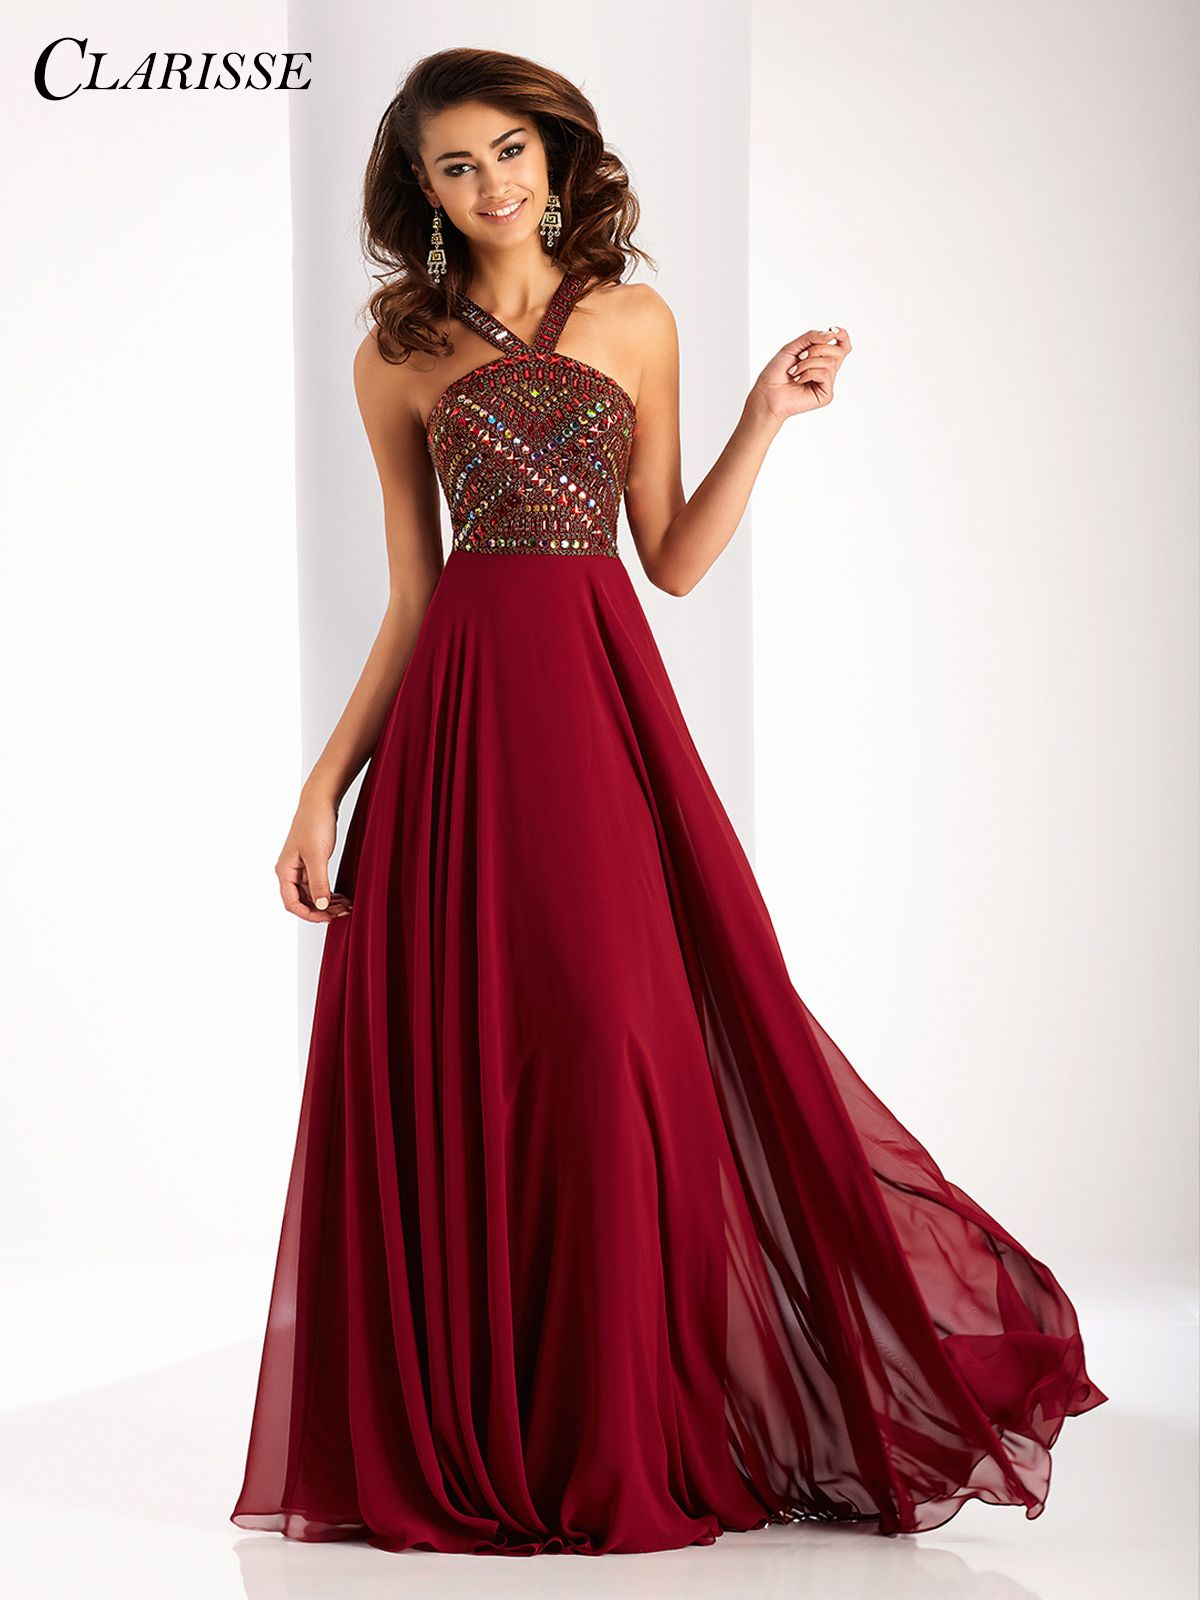 Pin by Clarisse Designs on Chiffon + Flowy Prom Dresses in 2019 ... 37f2d1723752